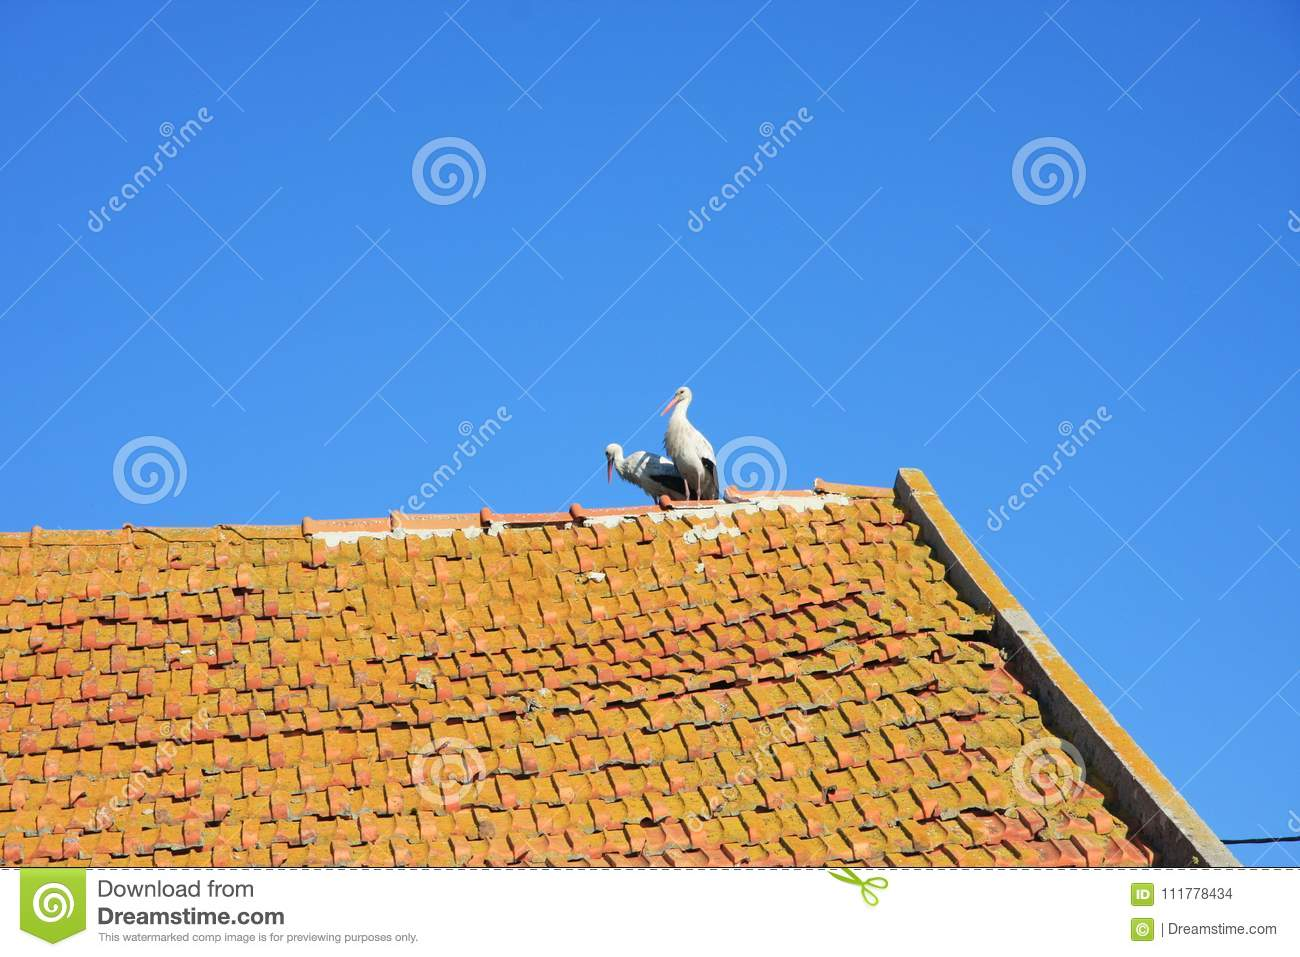 Two storks on tiled roof on background of blue sky.